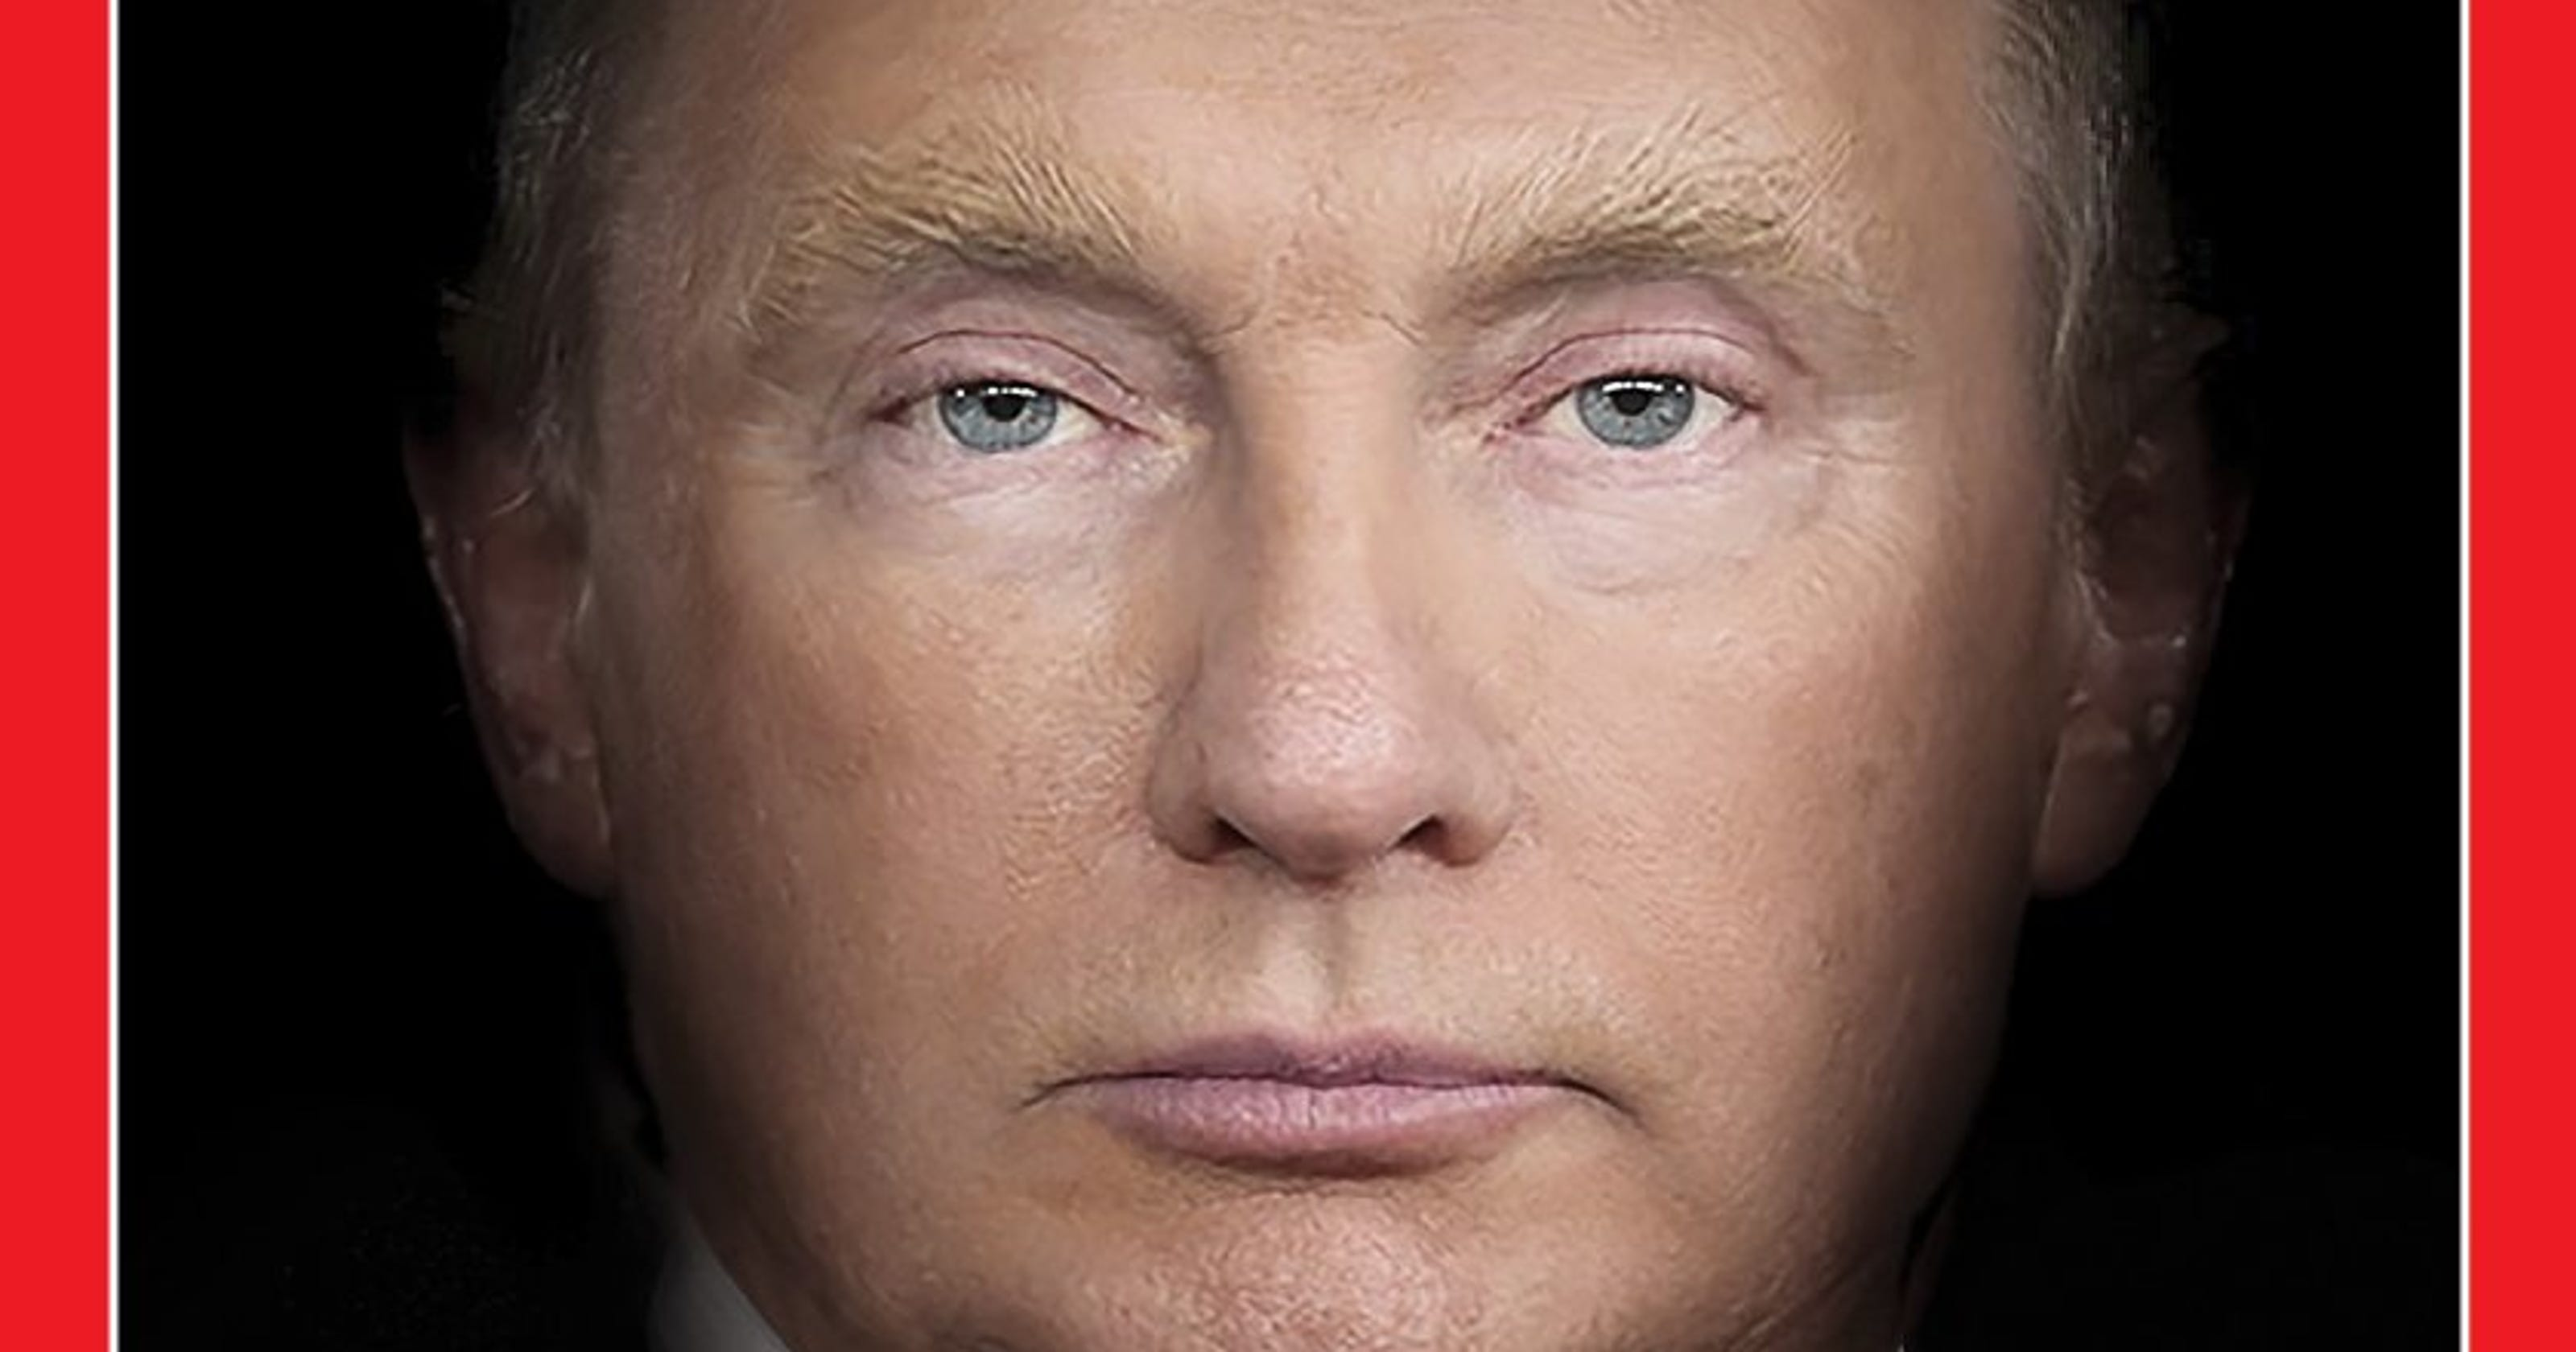 time magazine cover features eerie portrait of trump putin face mashup